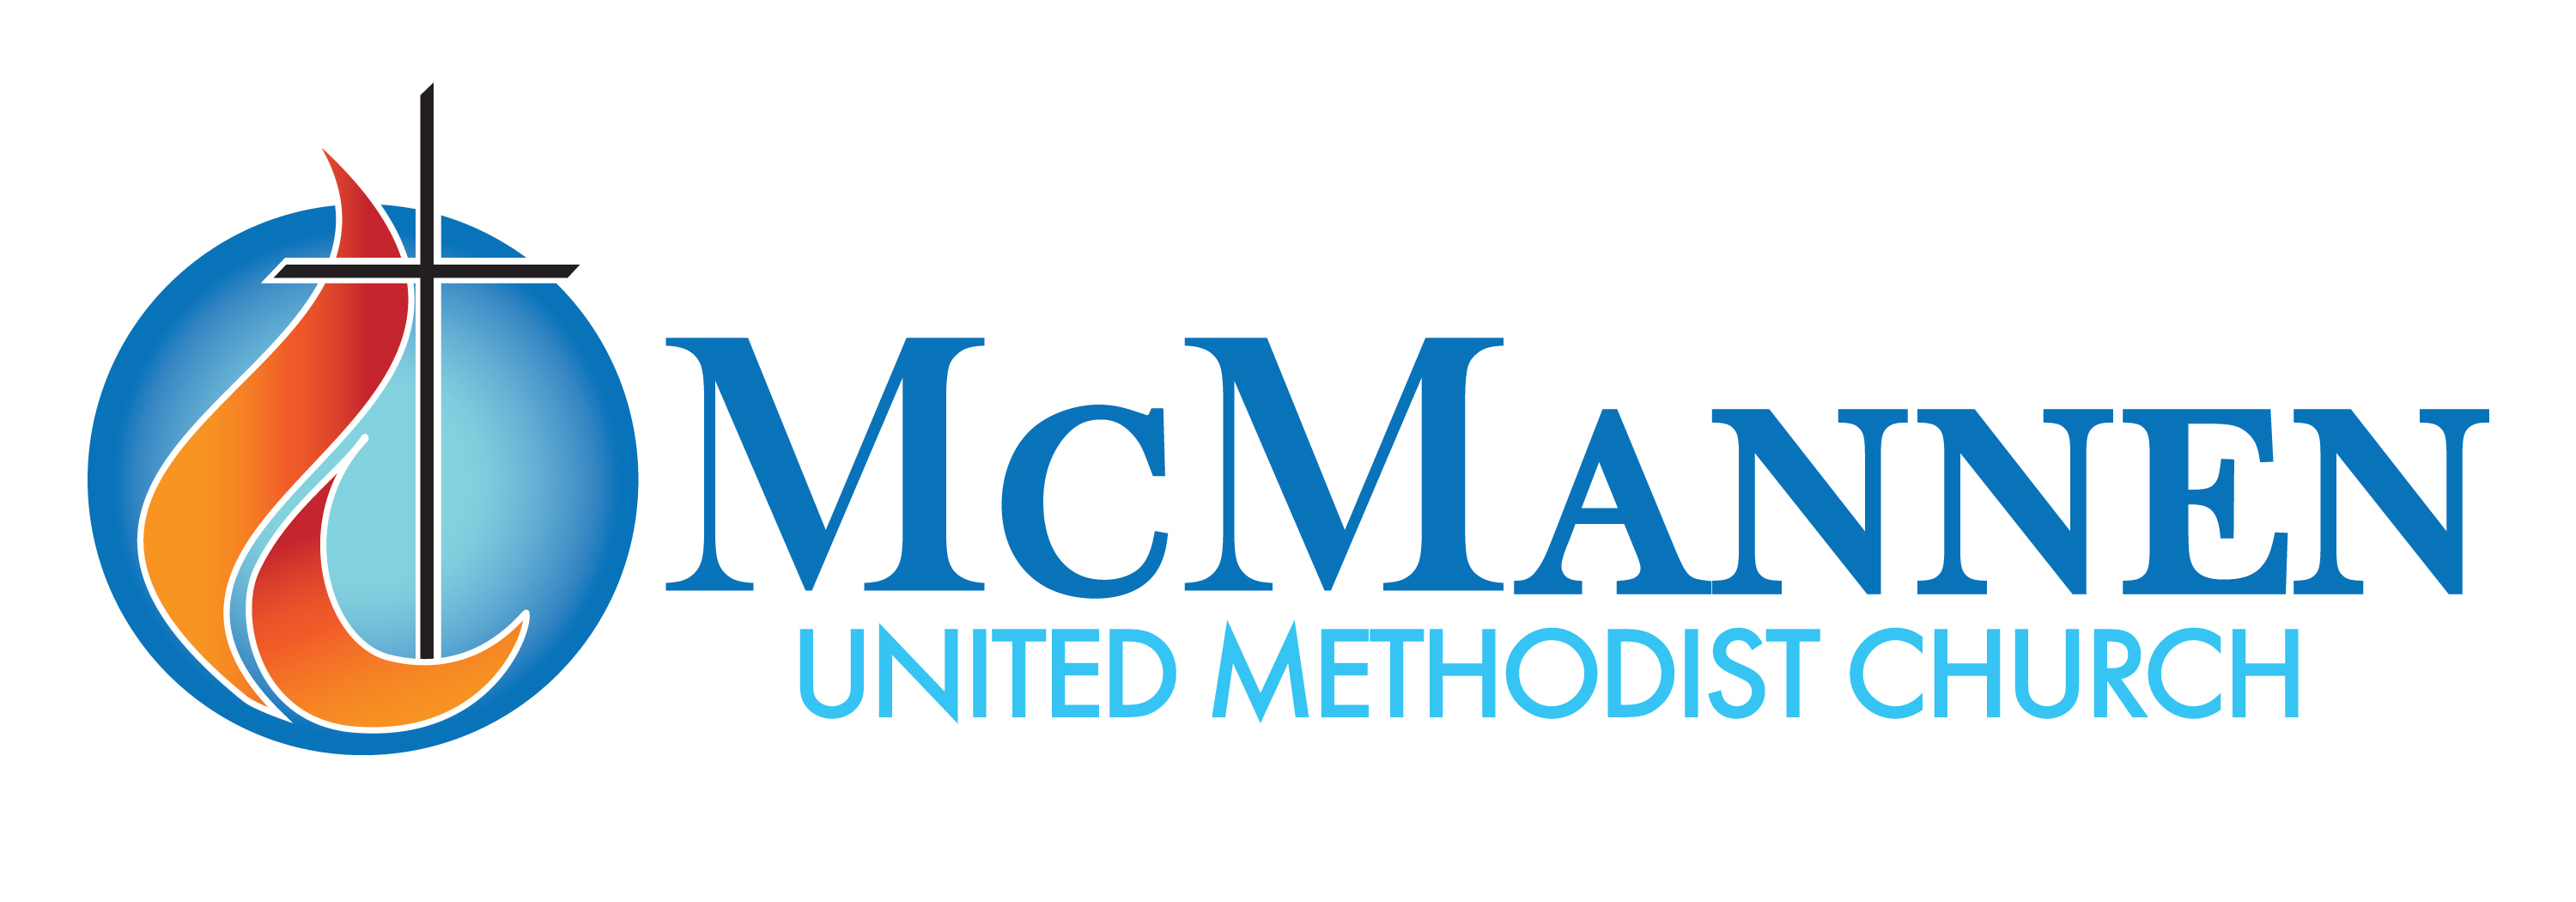 McMannen_Logo_Sample_GH